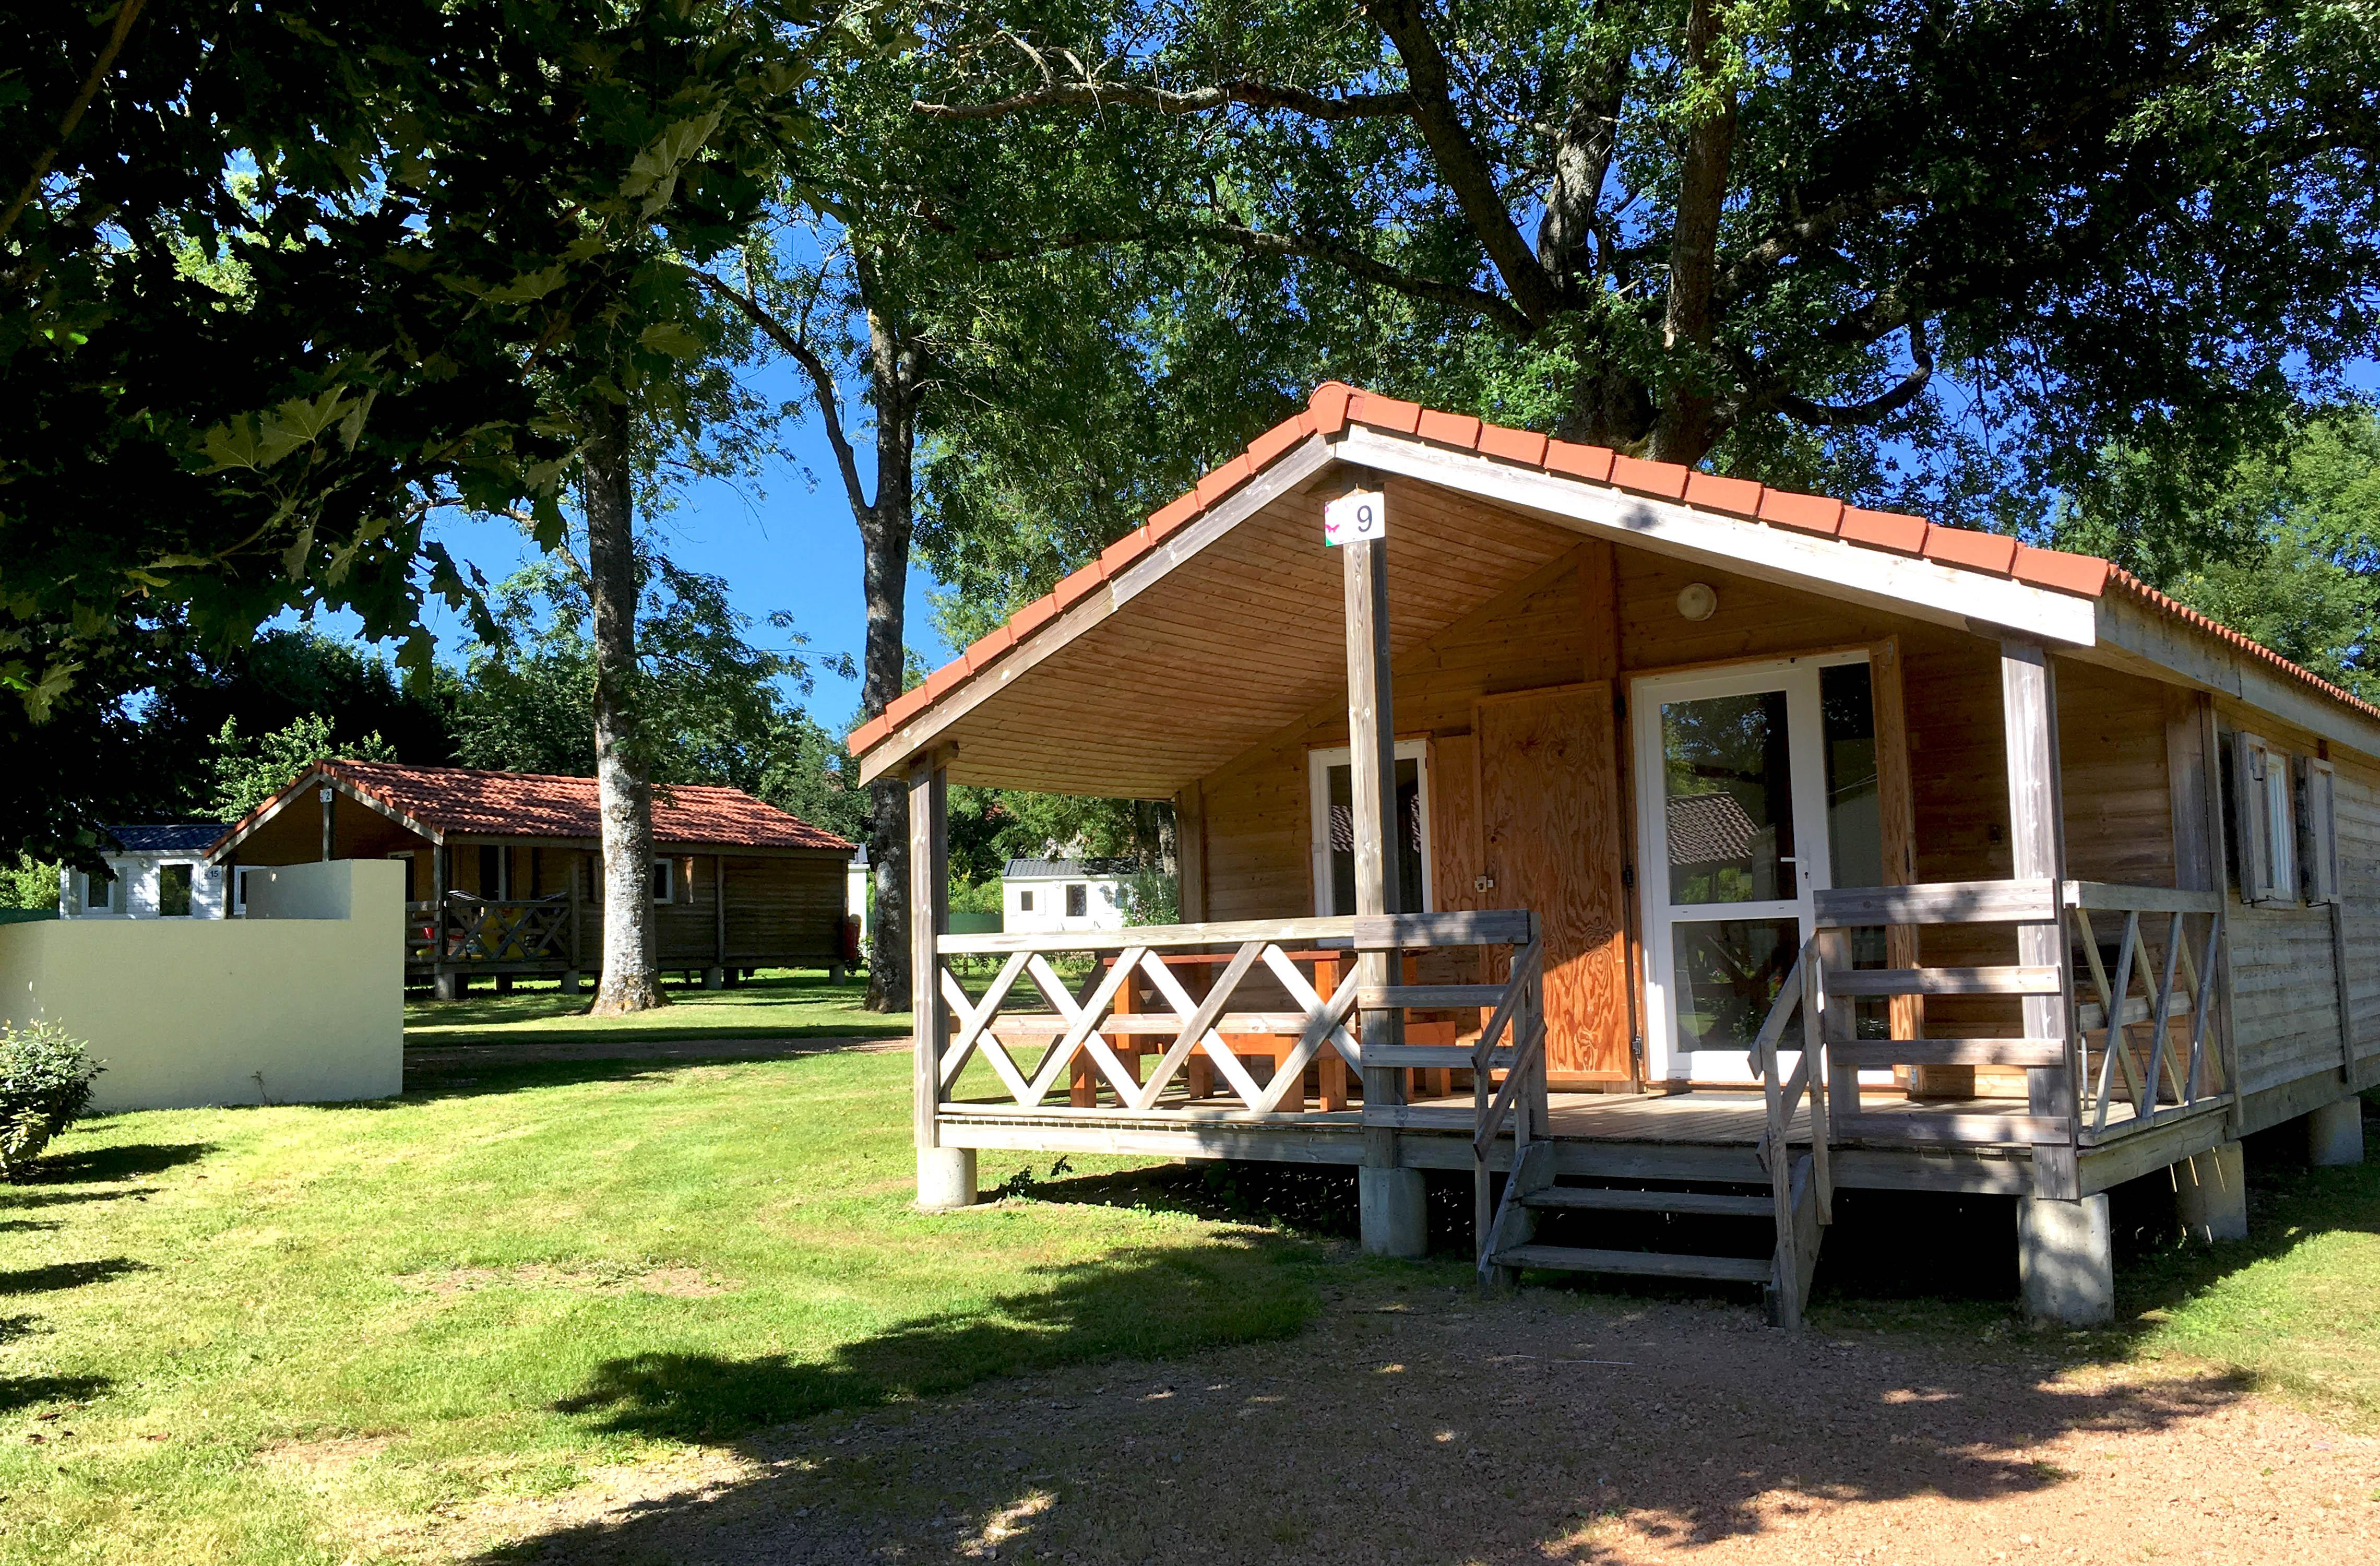 Huuraccommodaties - Chalet - Camping des Papillons